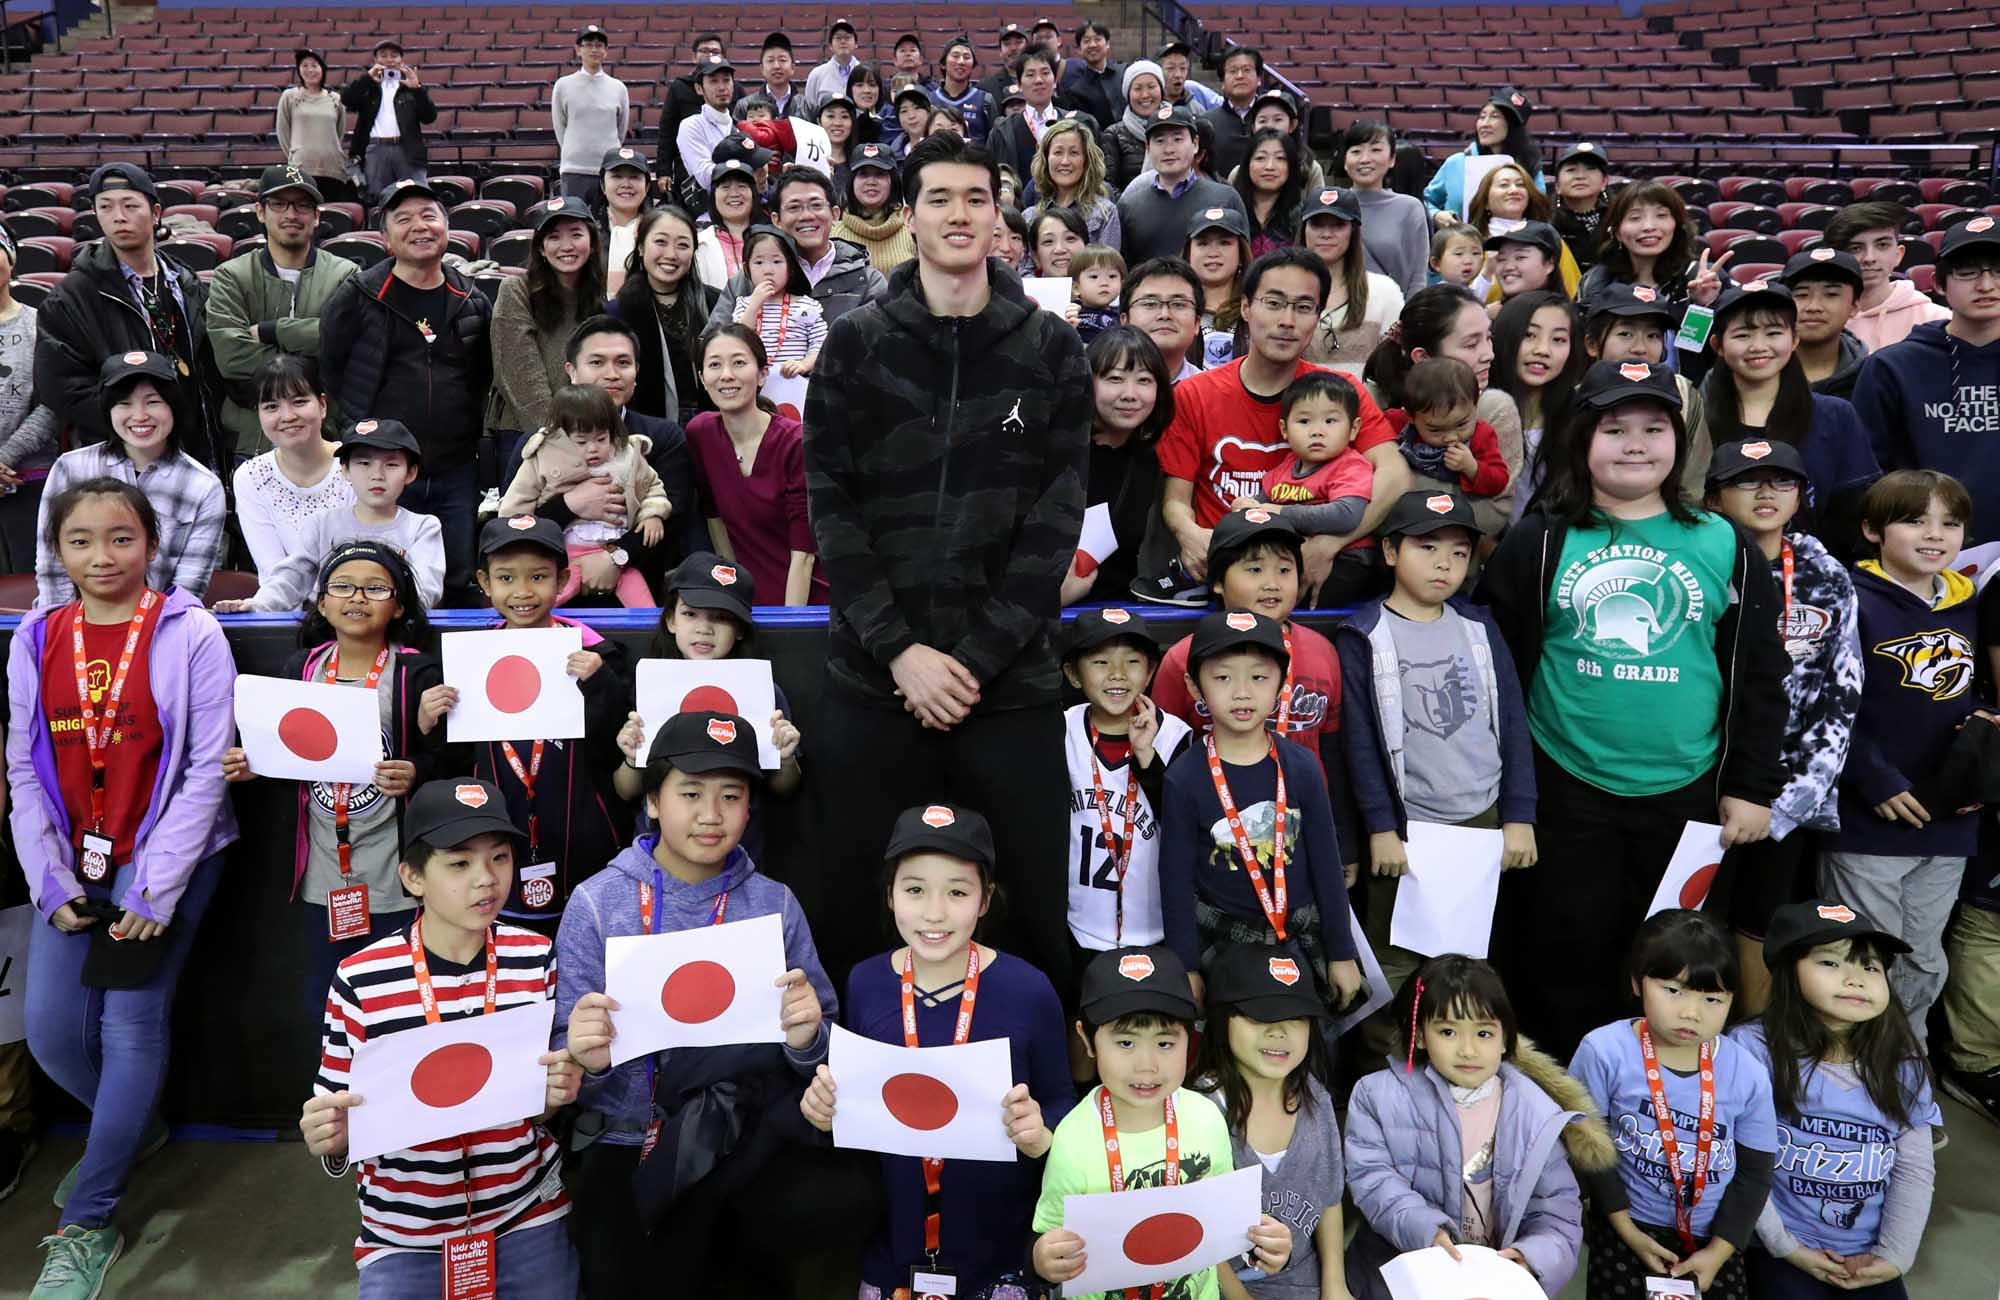 Memphis Grizzlies and Memphis Hustle forward Yuta Watanabe poses with fans before a G League game against the Northern Arizona Suns in February in Southaven, Mississippi. | NBA PHOTOS